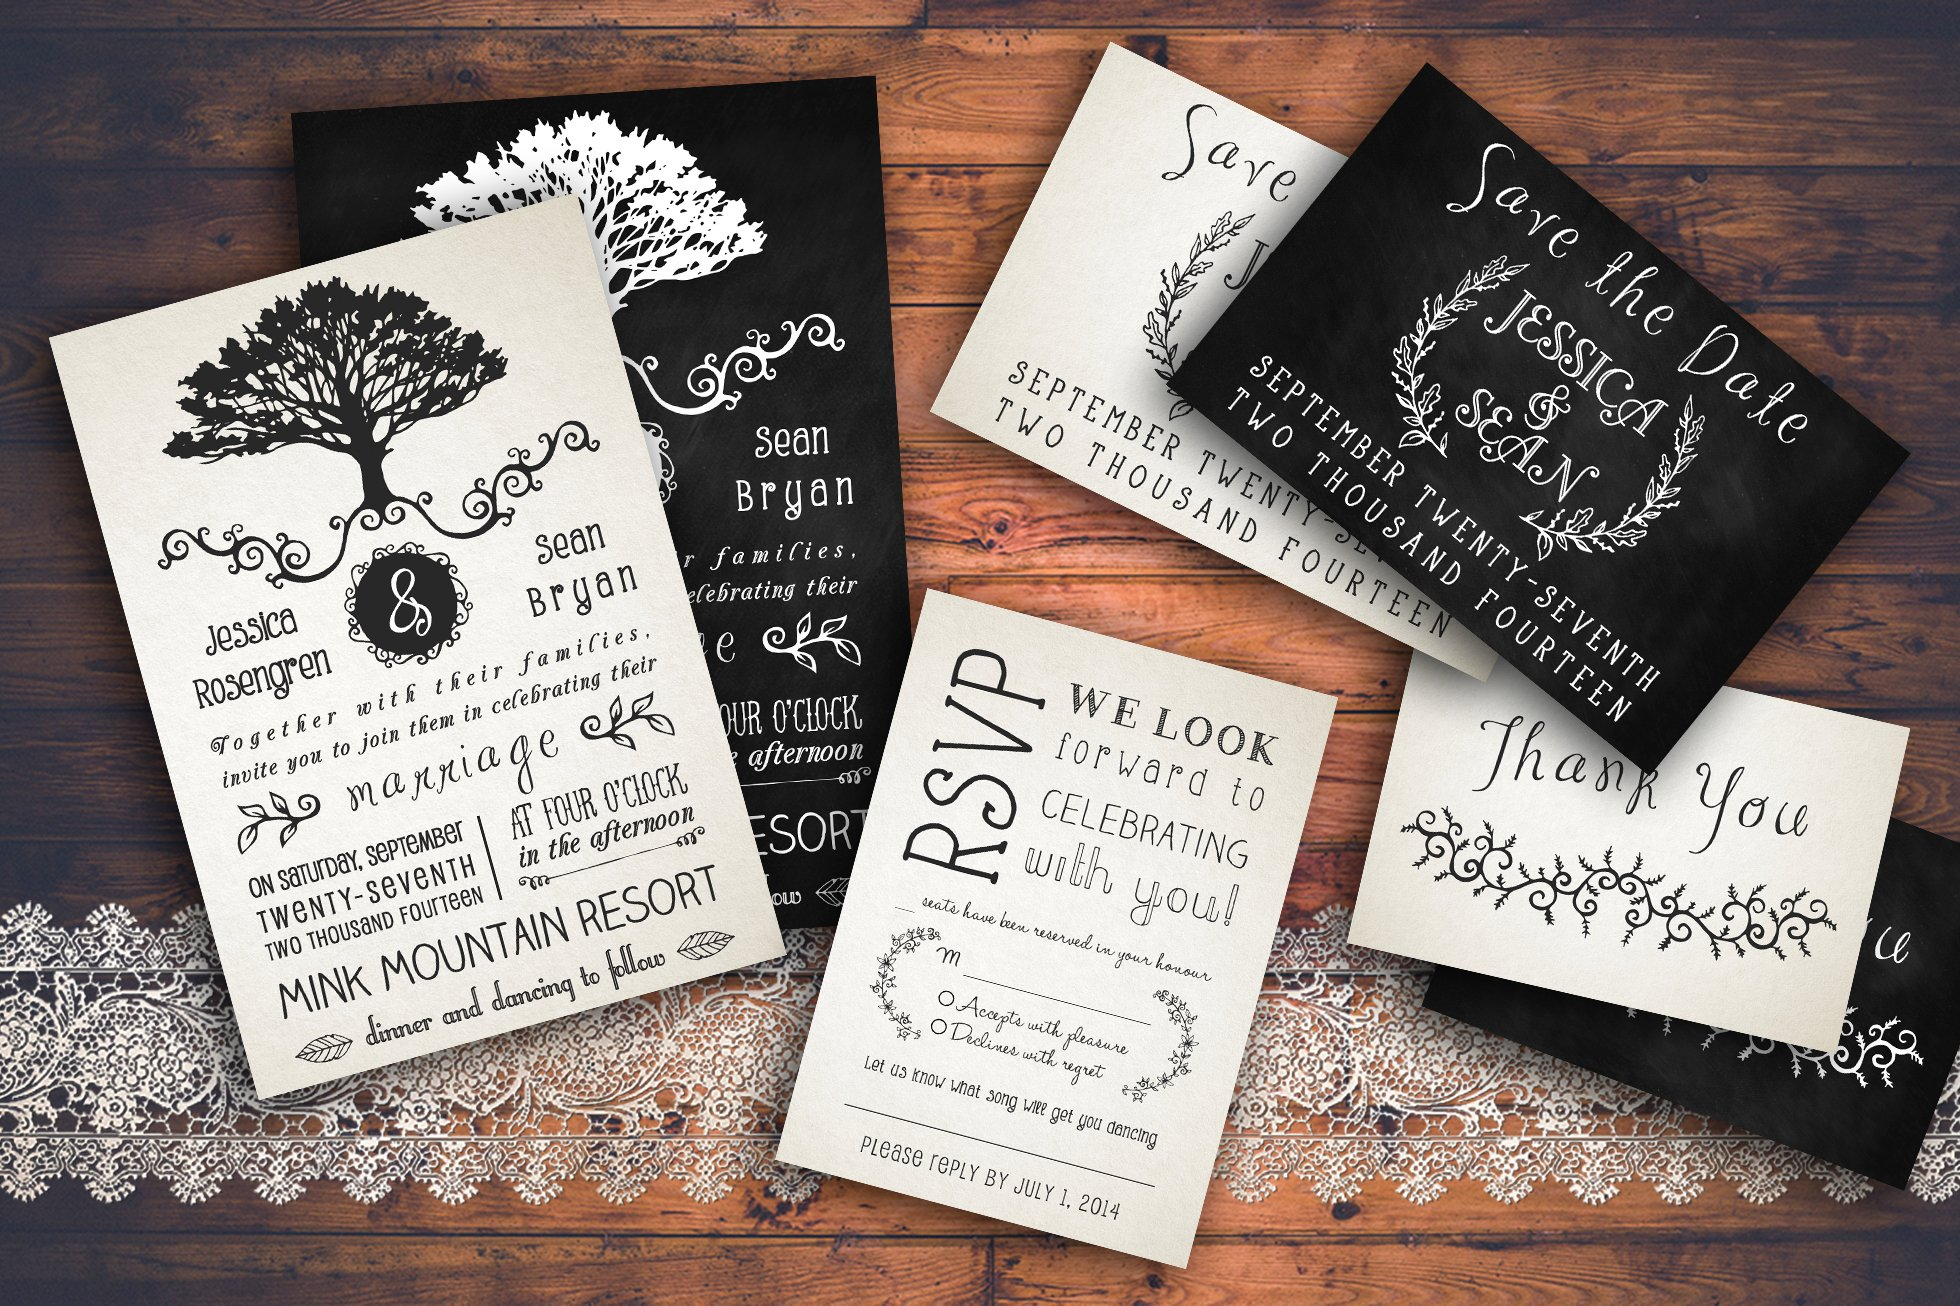 What Should Be Included In Wedding Invitation: Rustic Wedding Invitation Pack